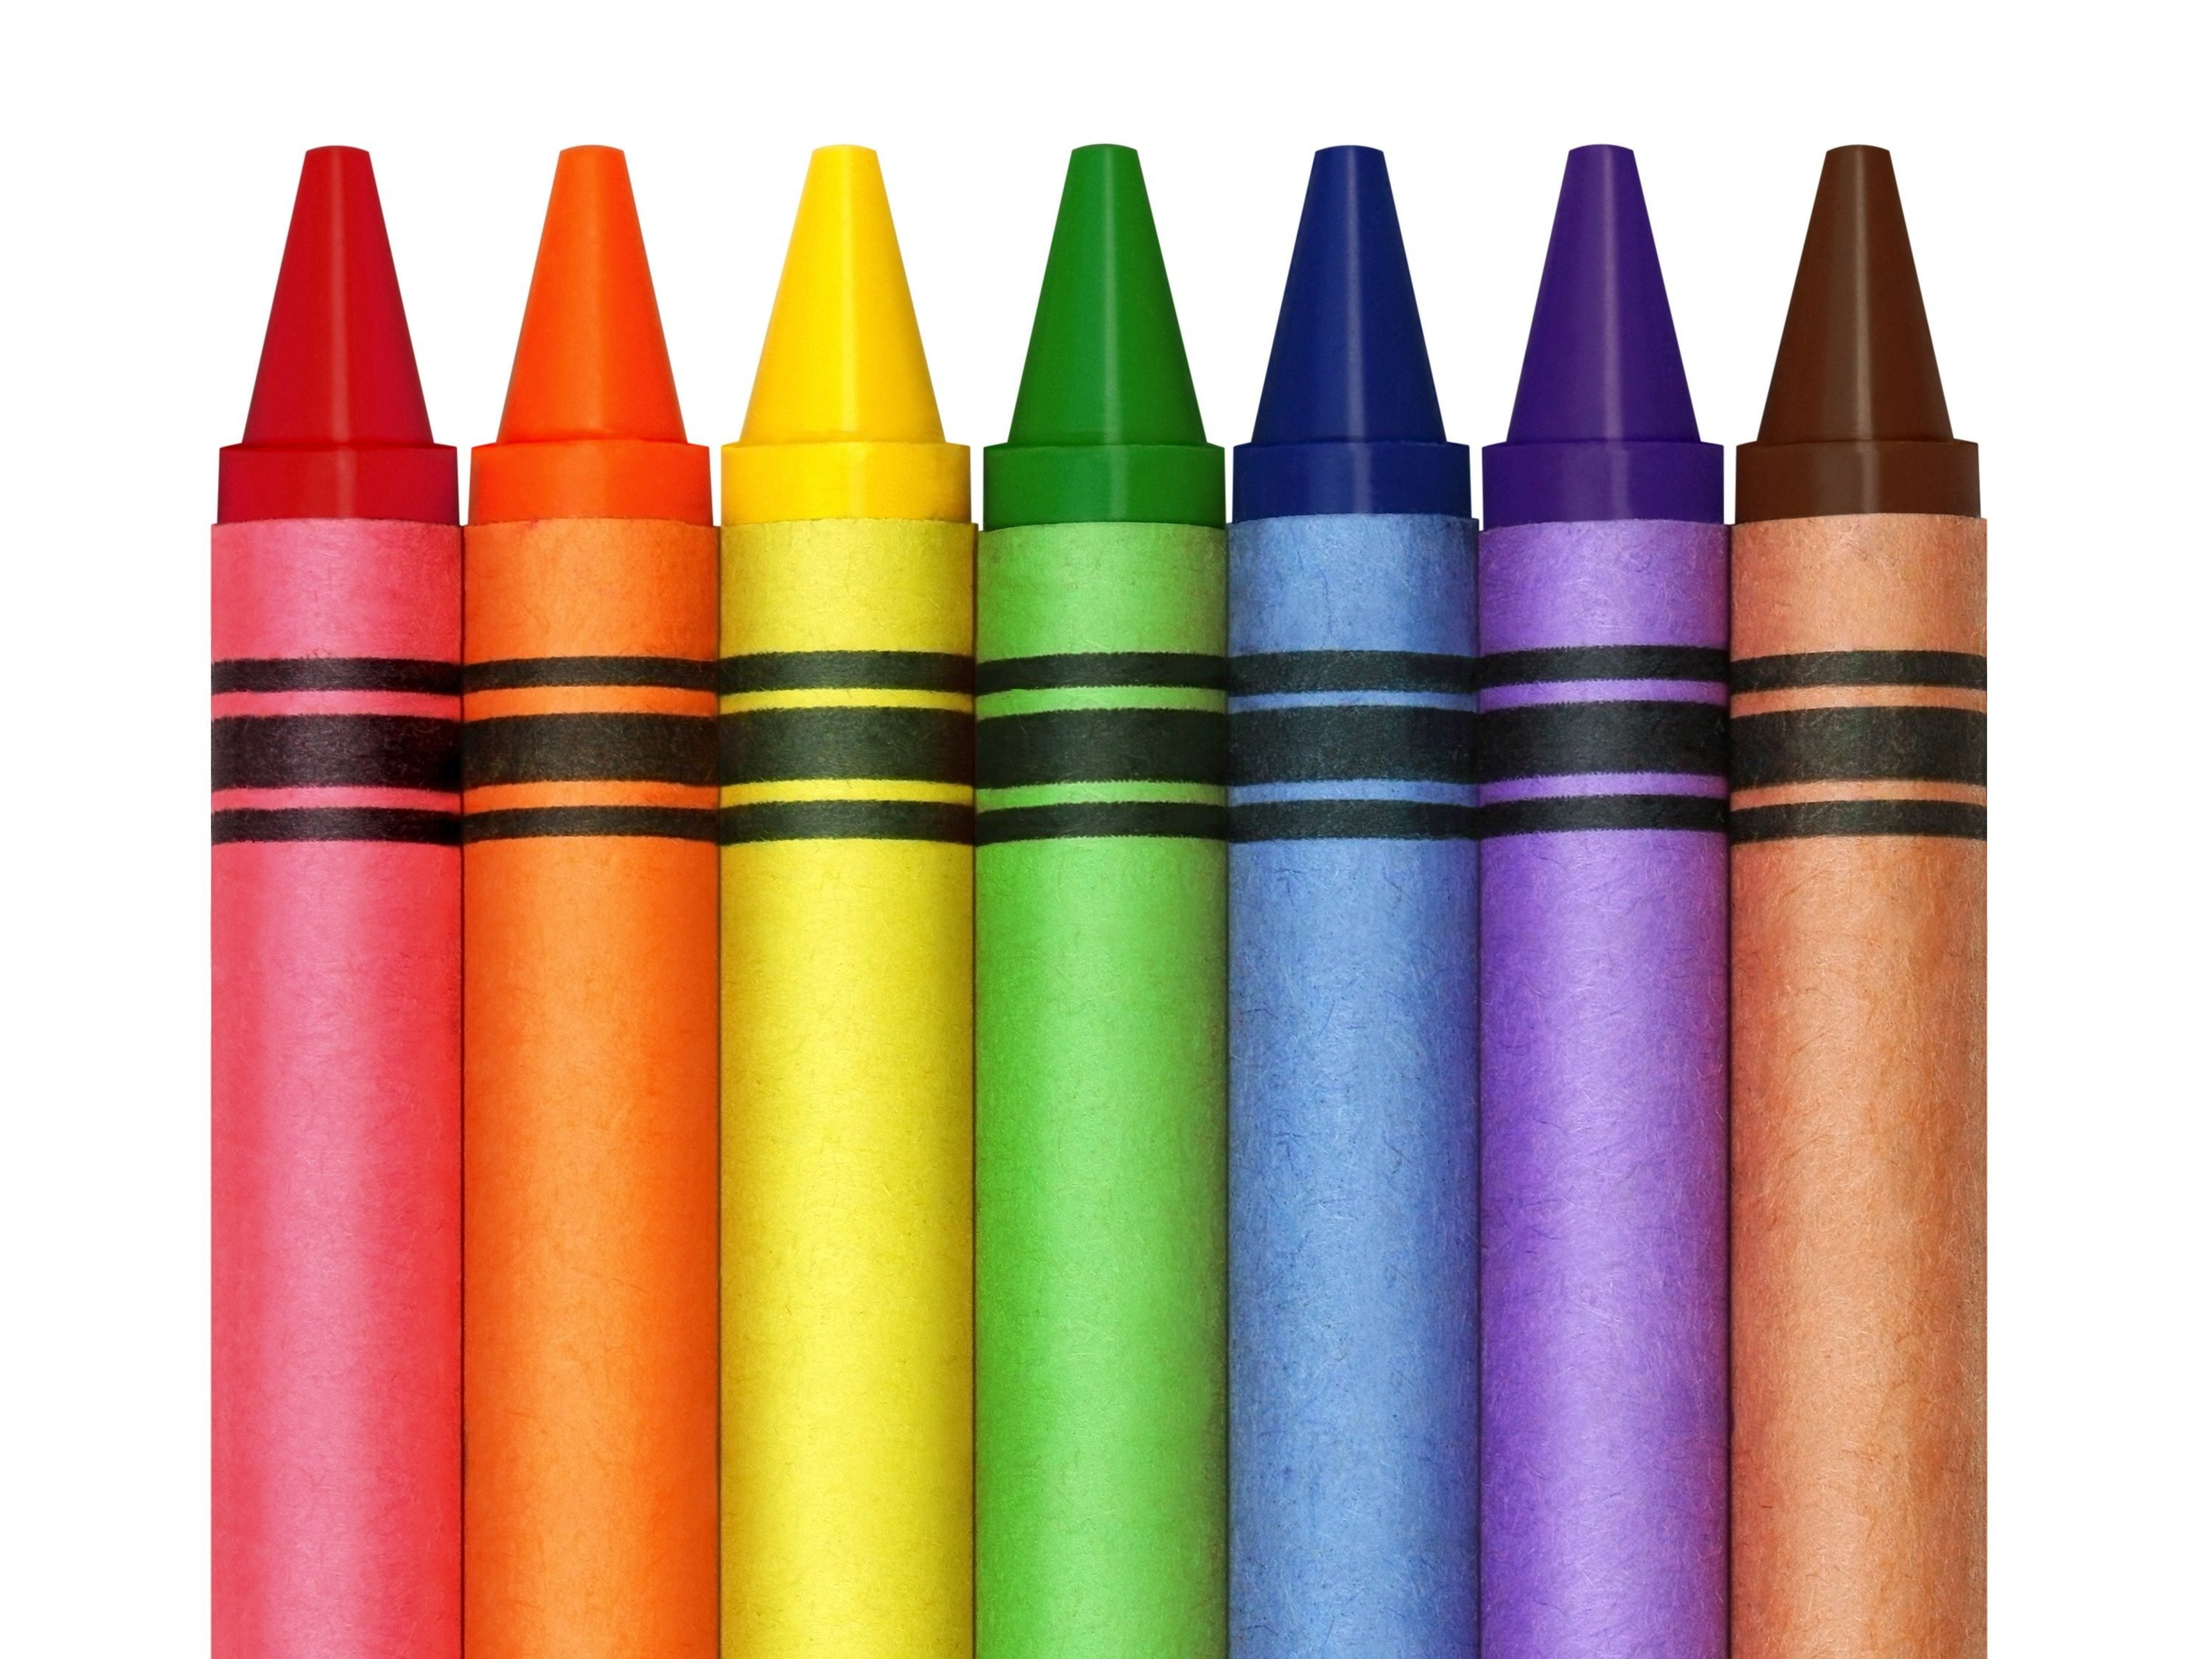 4. Use an Eraser to Clean Off Crayon